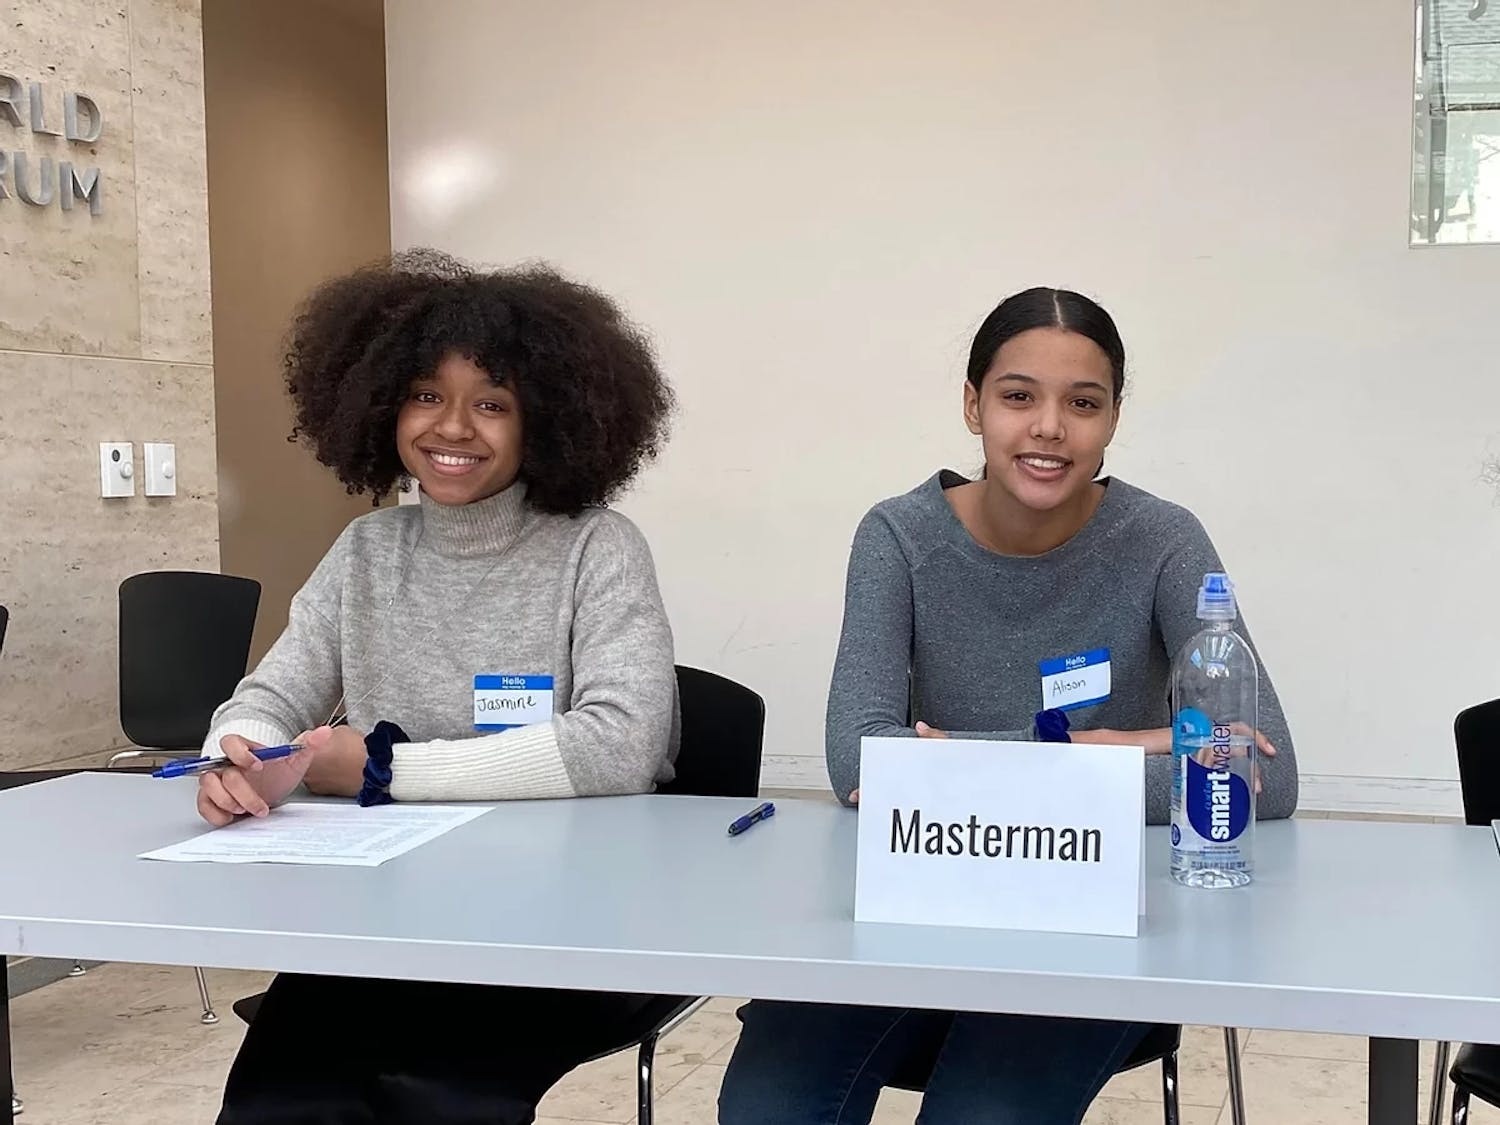 From left to right: Masterman seniors Jasmine Dixon and Alison Fortenberry, leaders of Masterman's weekly race forum.   Photo credits: Alison Fortenberry